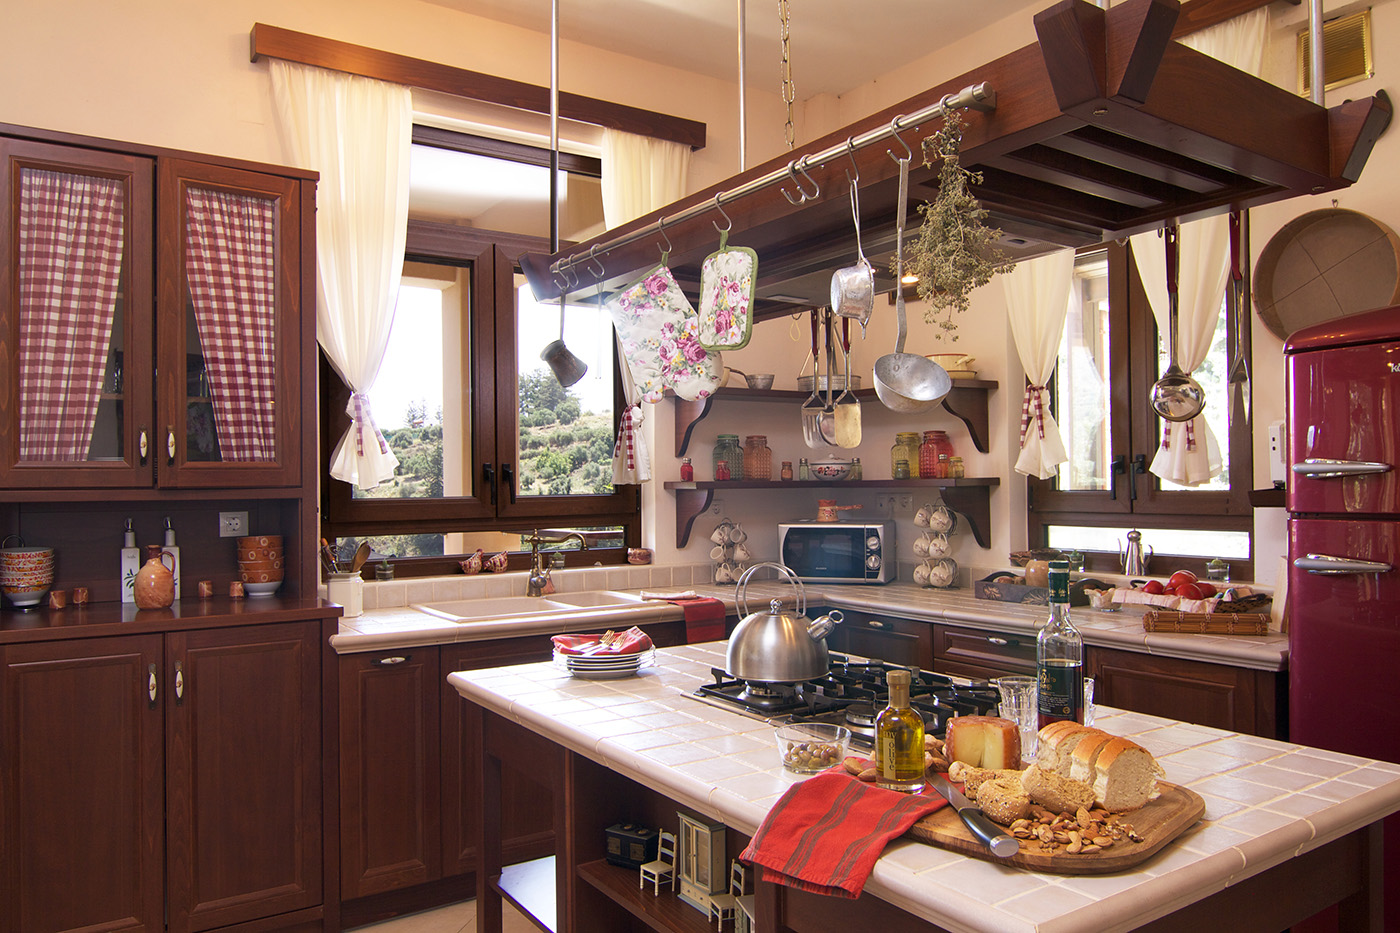 Indoors - Island style fully equipped kitchen